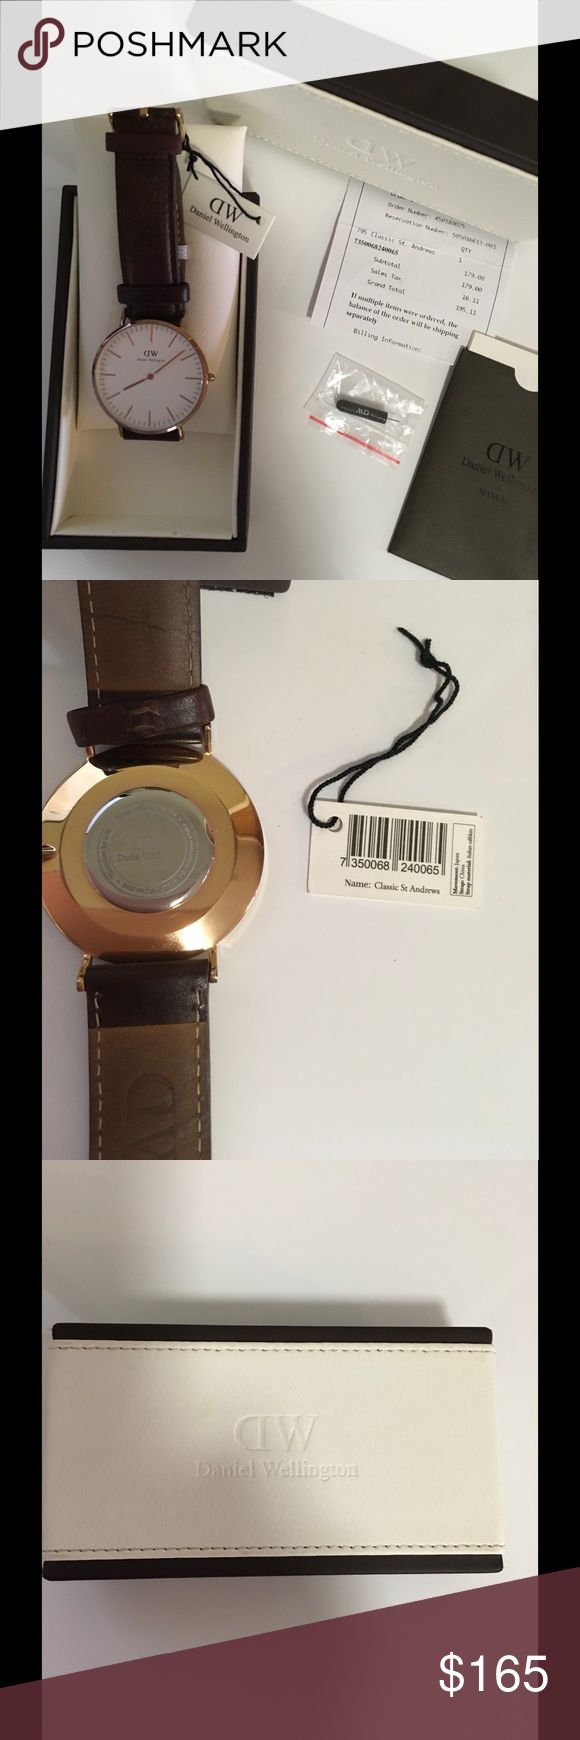 Gorgeous Daniel Wellington Watch. Gorgeous Daniel Wellington Watch 36mm. In Rose-Gold tone case, dark brown leather strap. Water resistant. Has some wear But in great condition (please see pics) Sorry No Trades. Daniel Wellington Accessories Watches